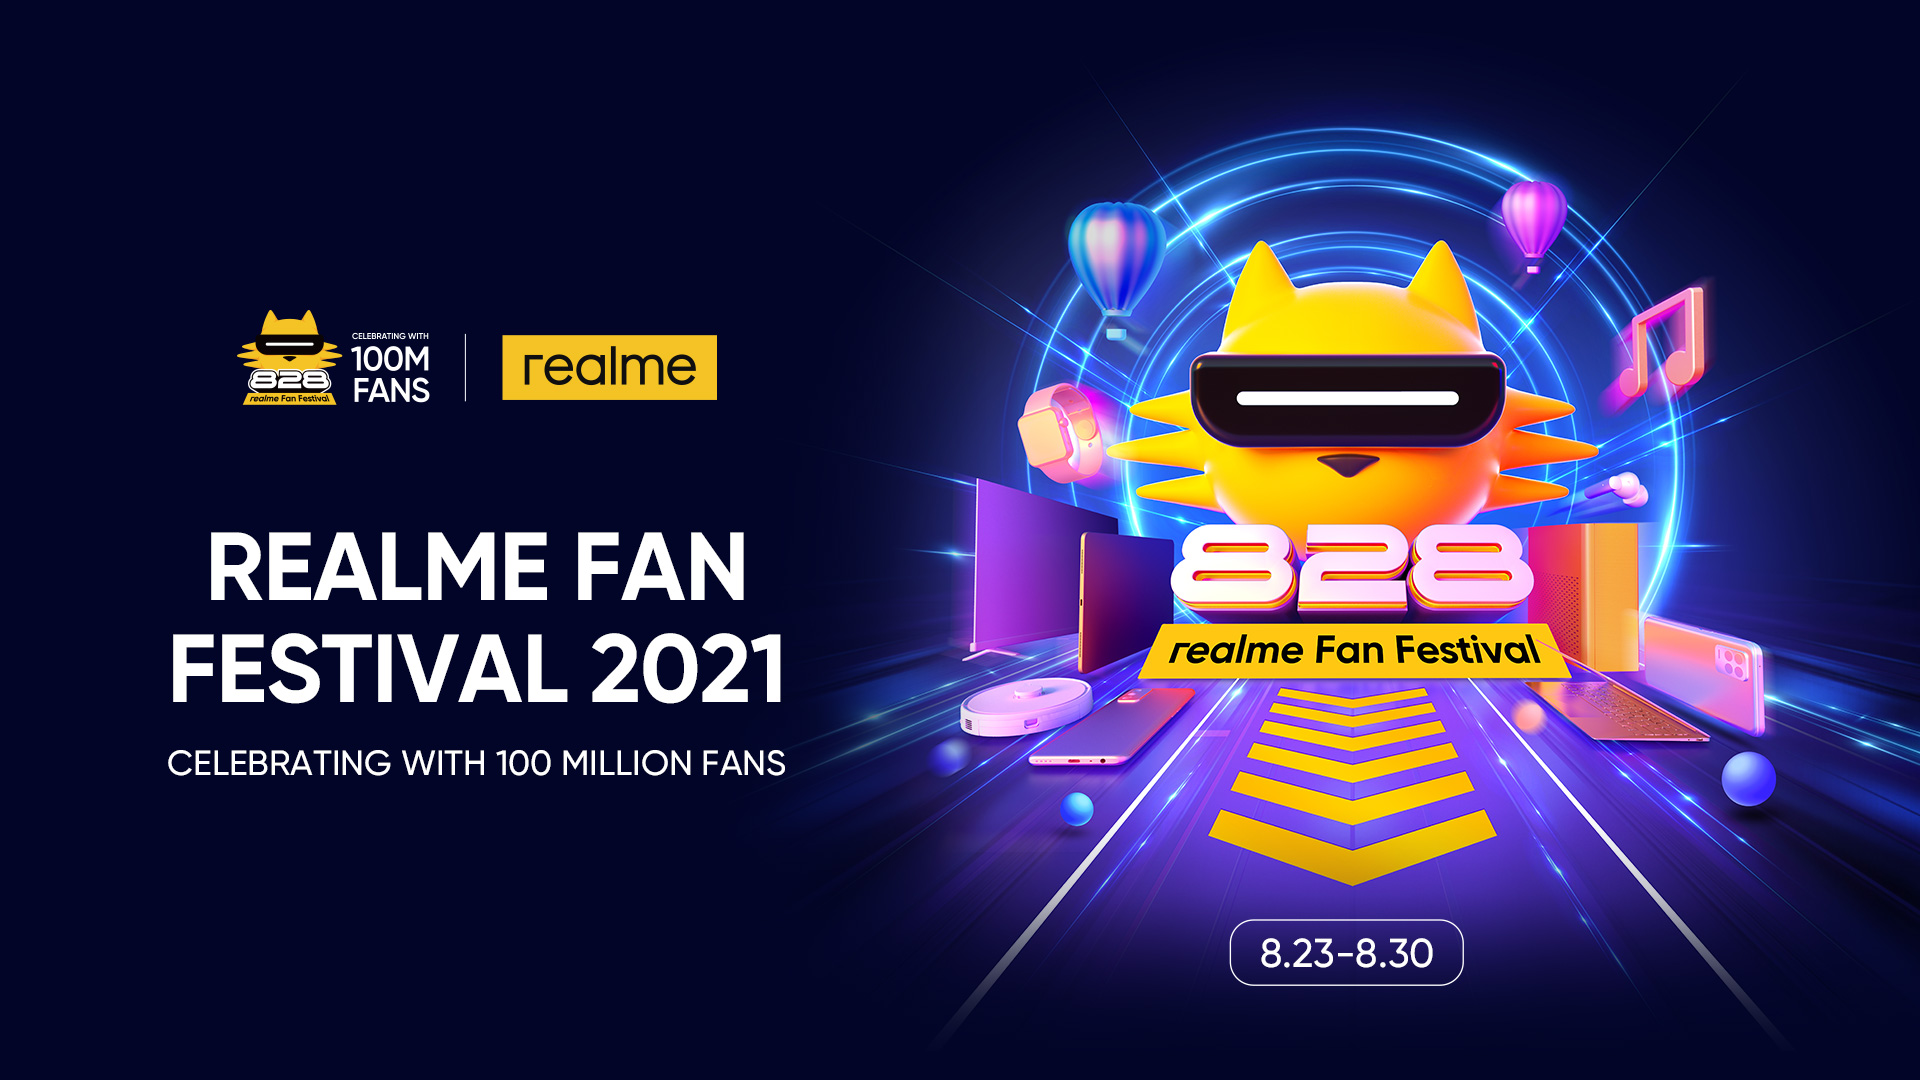 Artwork 2 2 - realme to Launch 100 Million Sales Milestone Product GT Master Edition Series and Other Product Lines on August 23